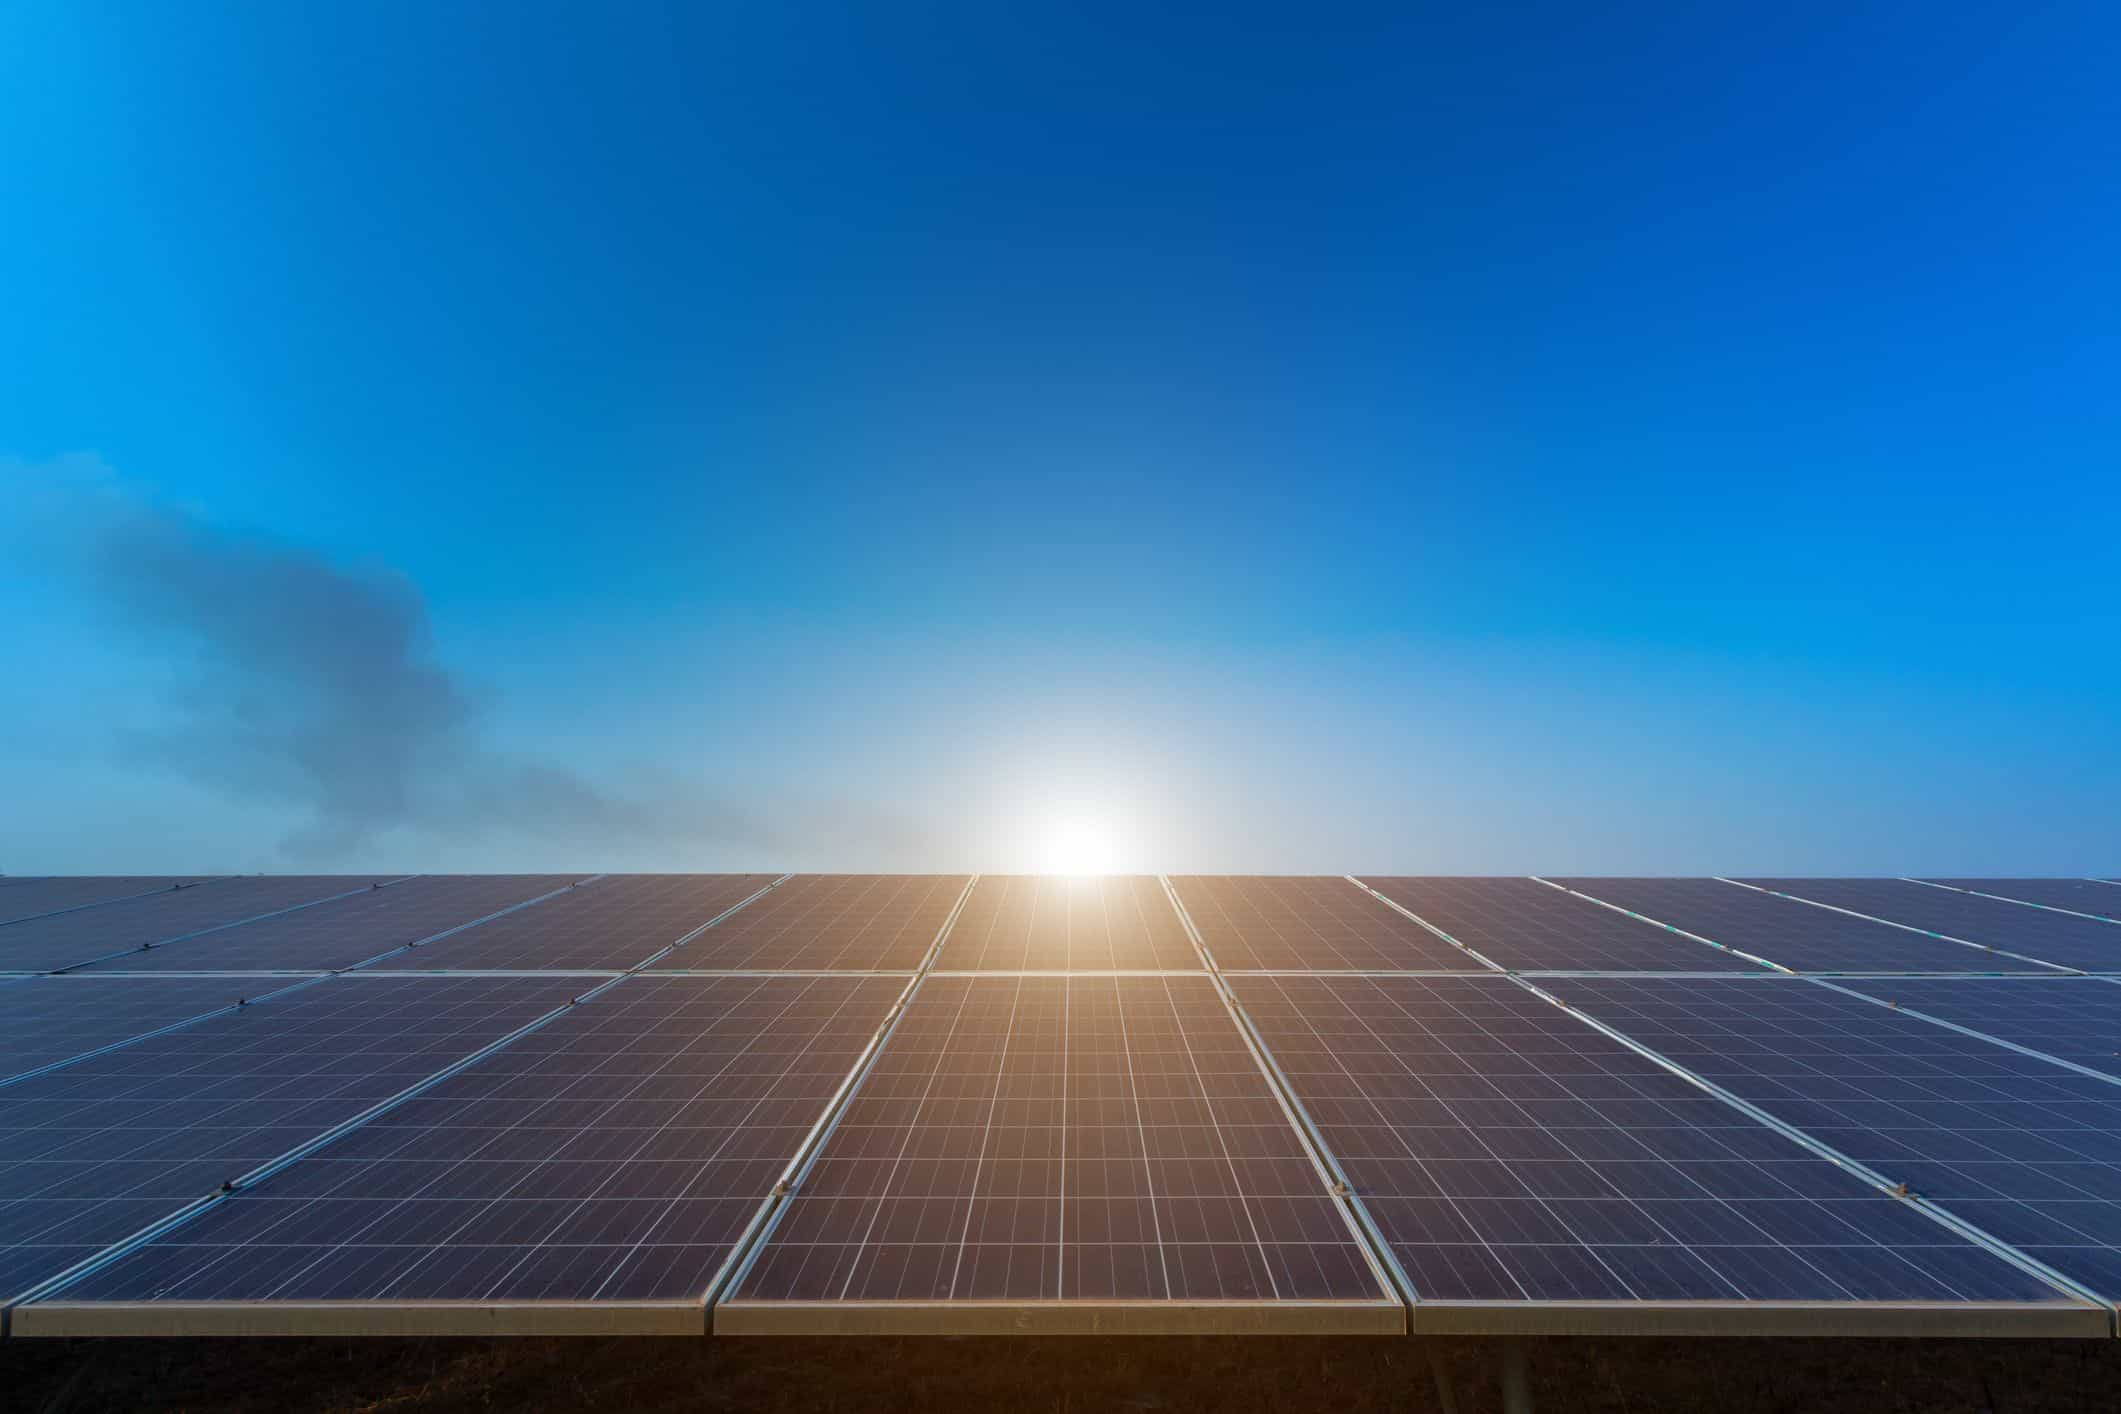 40 Years of Free Energy with a Solar Power Residential System?